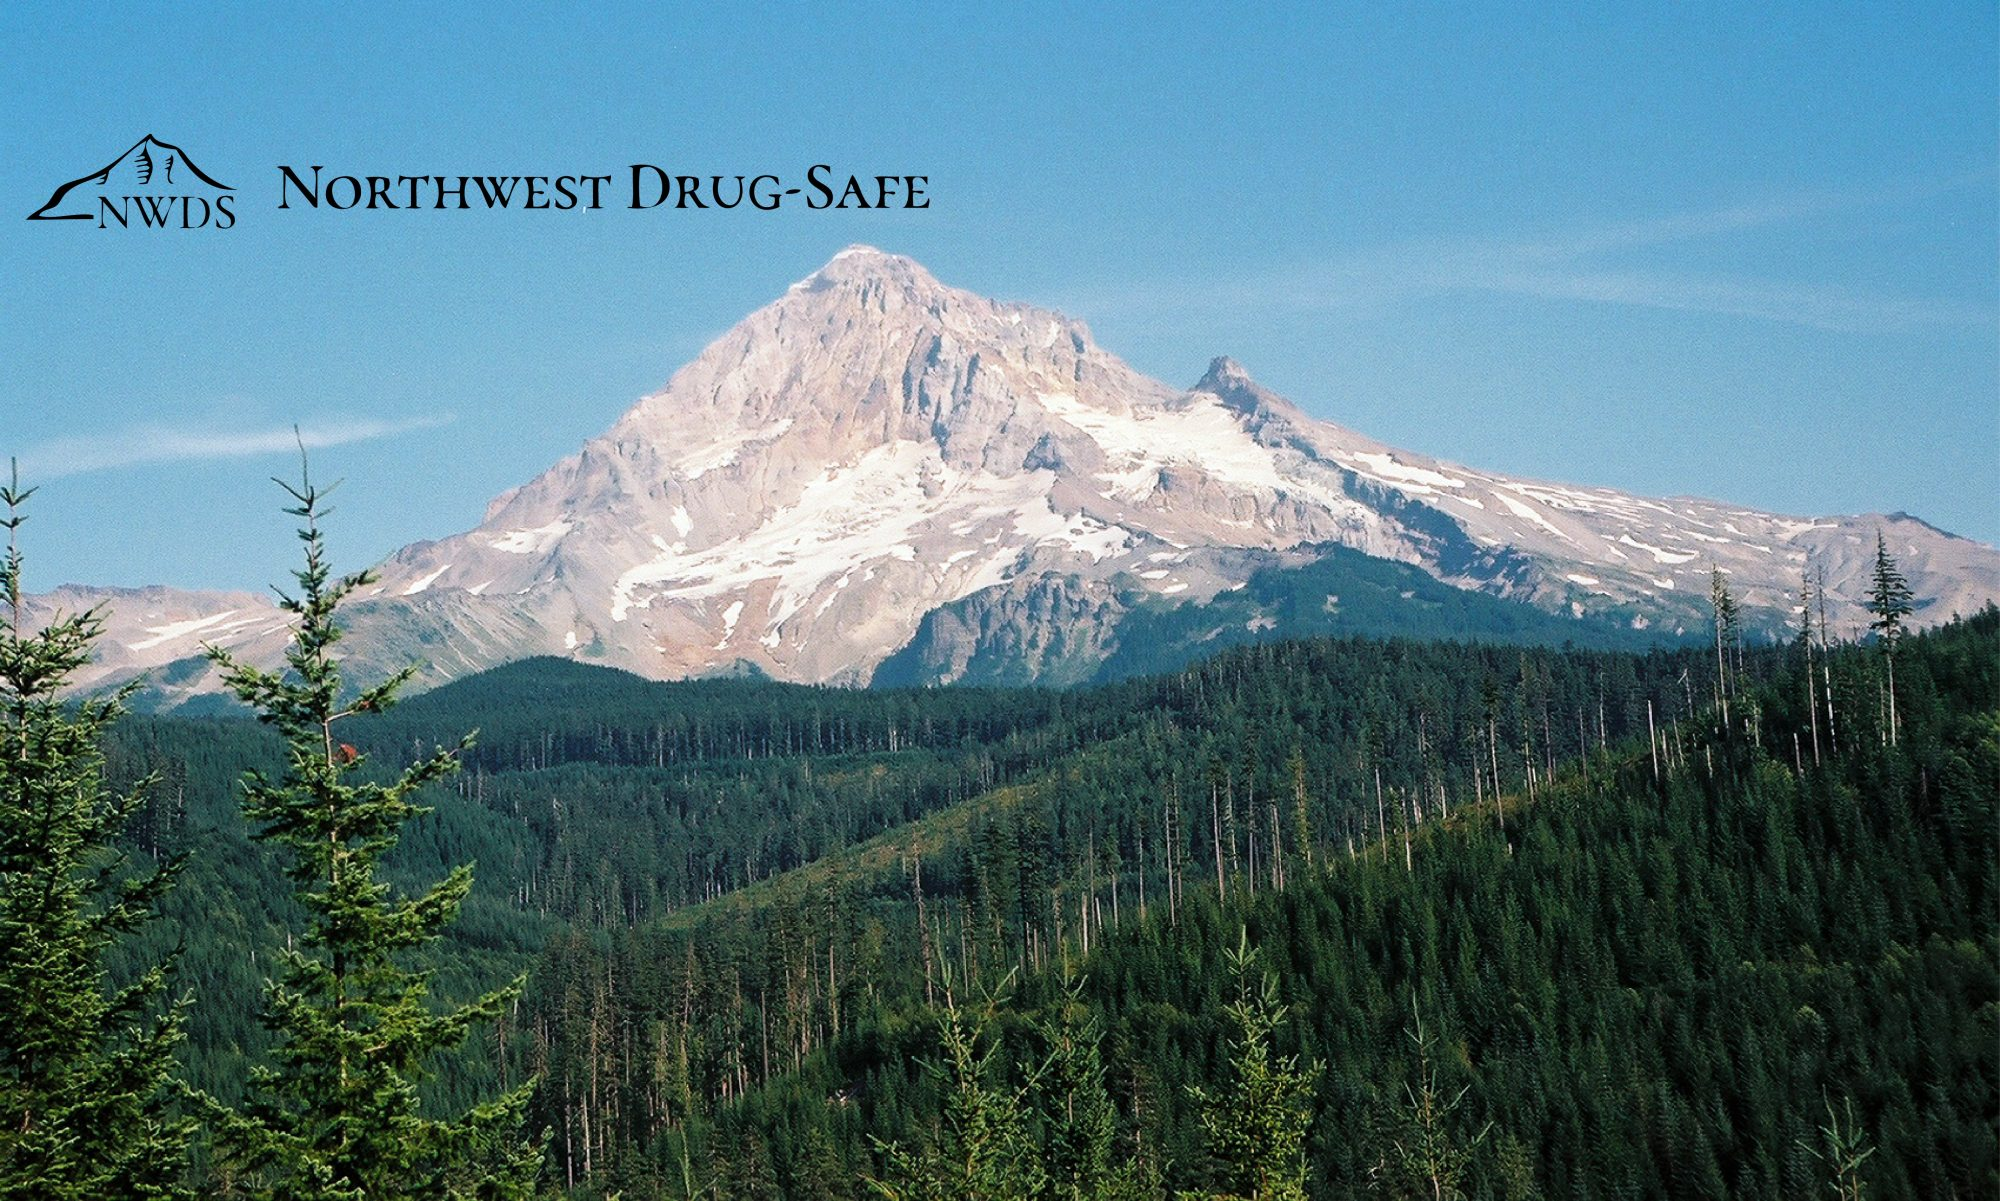 Northwest Drug-Safe